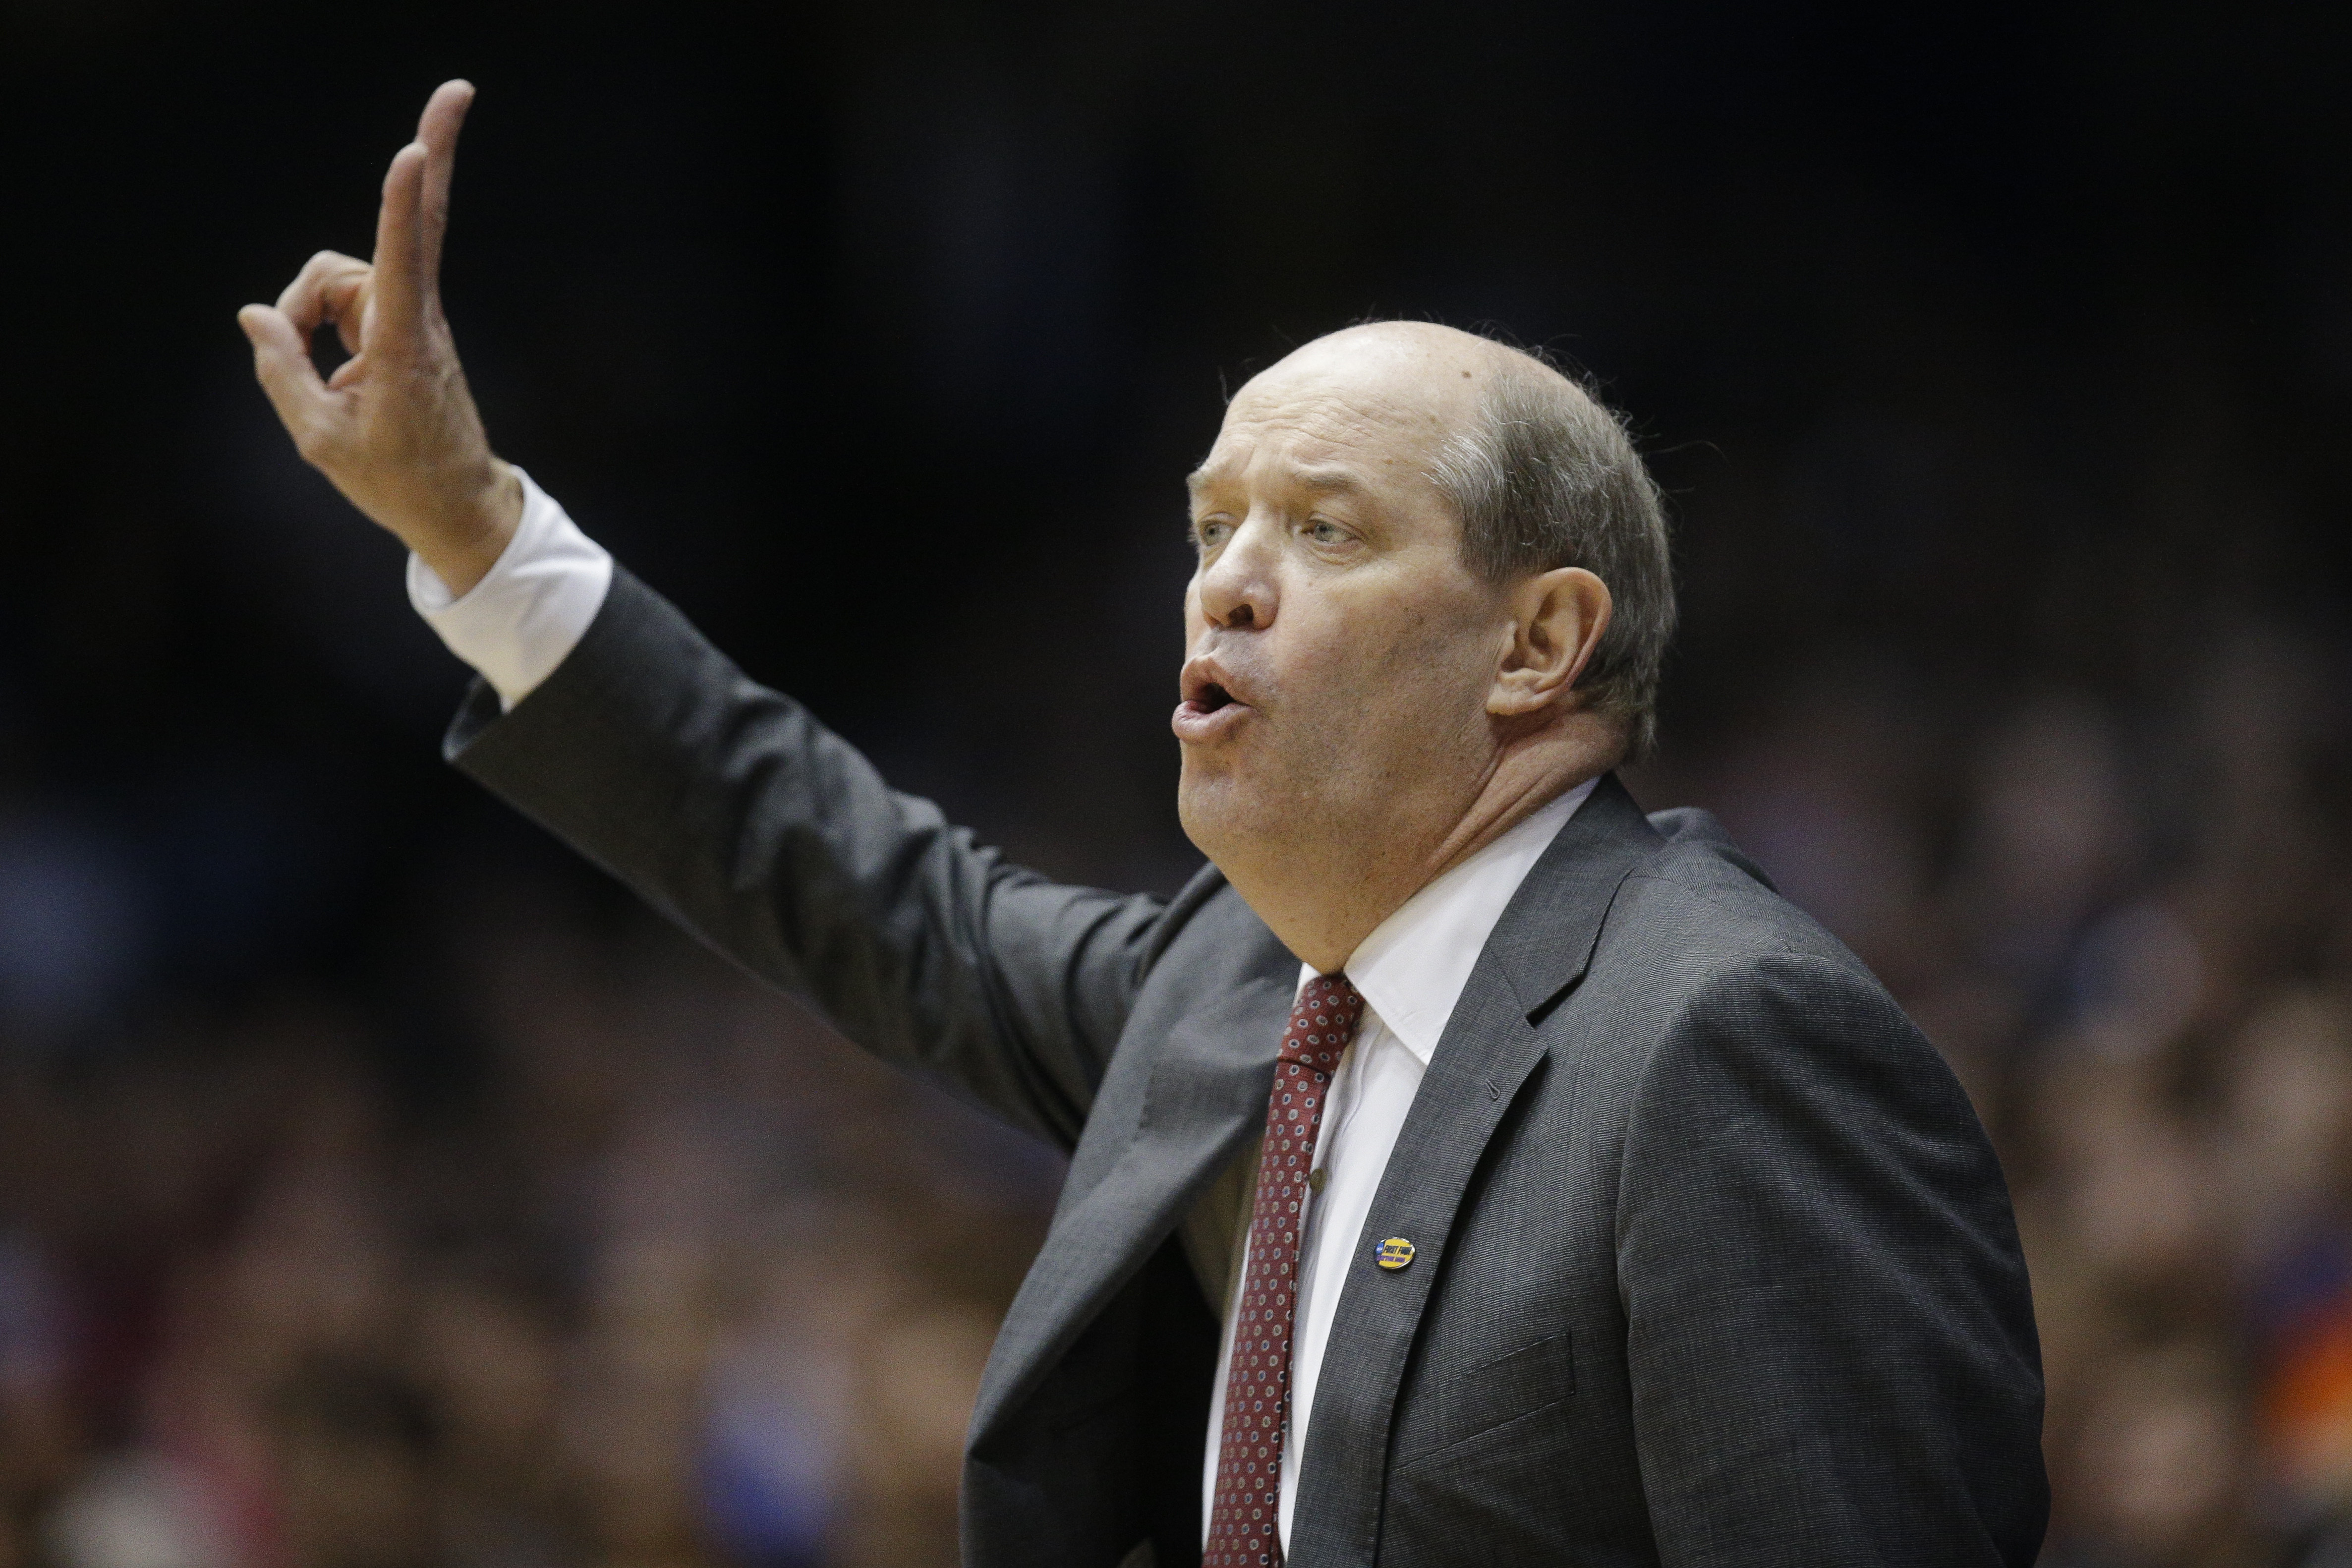 Vanderbilt coach Kevin Stallings gestures during the second half of the team's First Four game of the NCAA men's college basketball tournament, against Wichita State on Tuesday, March 15, 2016, in Dayton, Ohio. Wichita State won 70-50. (AP Photo/John Minc